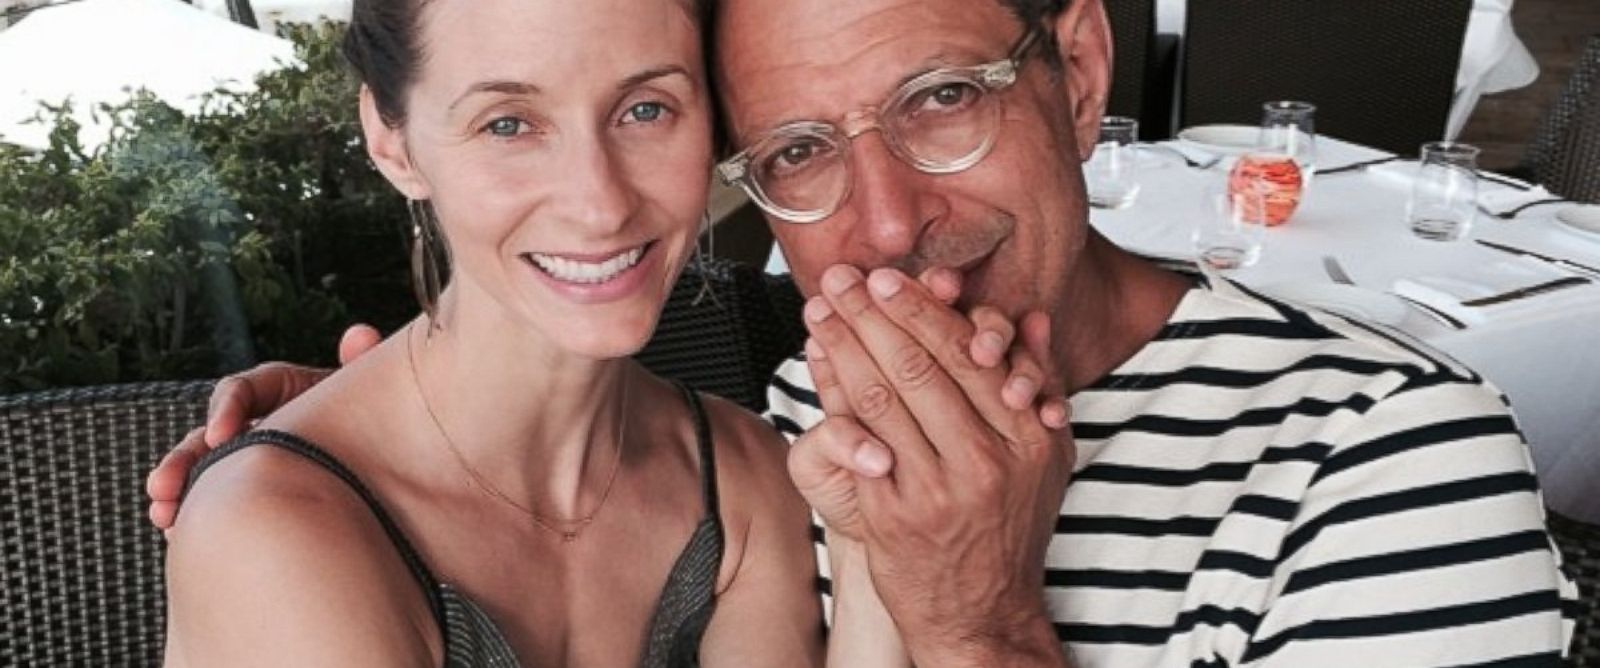 PHOTO: Emilie Livingston shared this photo of herself and Jeff Goldblum on Twitter, July 13, 2014.